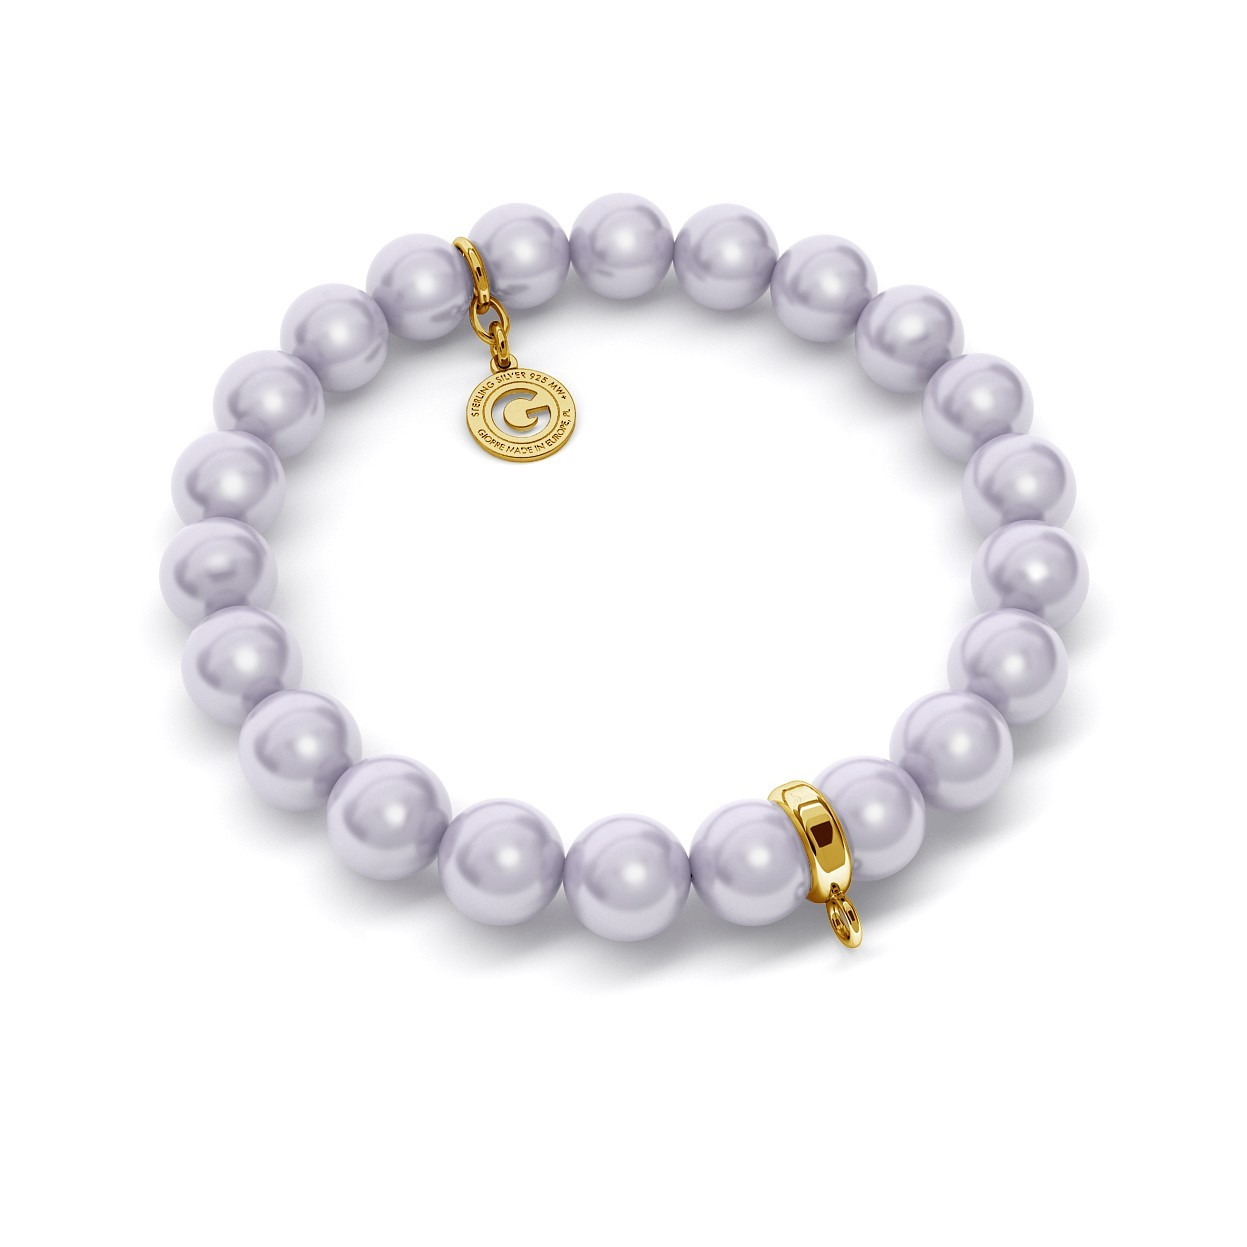 FLEXIBLE BRACELET WITH PEARLS (SWAROVSKI PEARL) FOR 1 CHARM, SILVER 925, RHODIUM OR GOLD PLATED